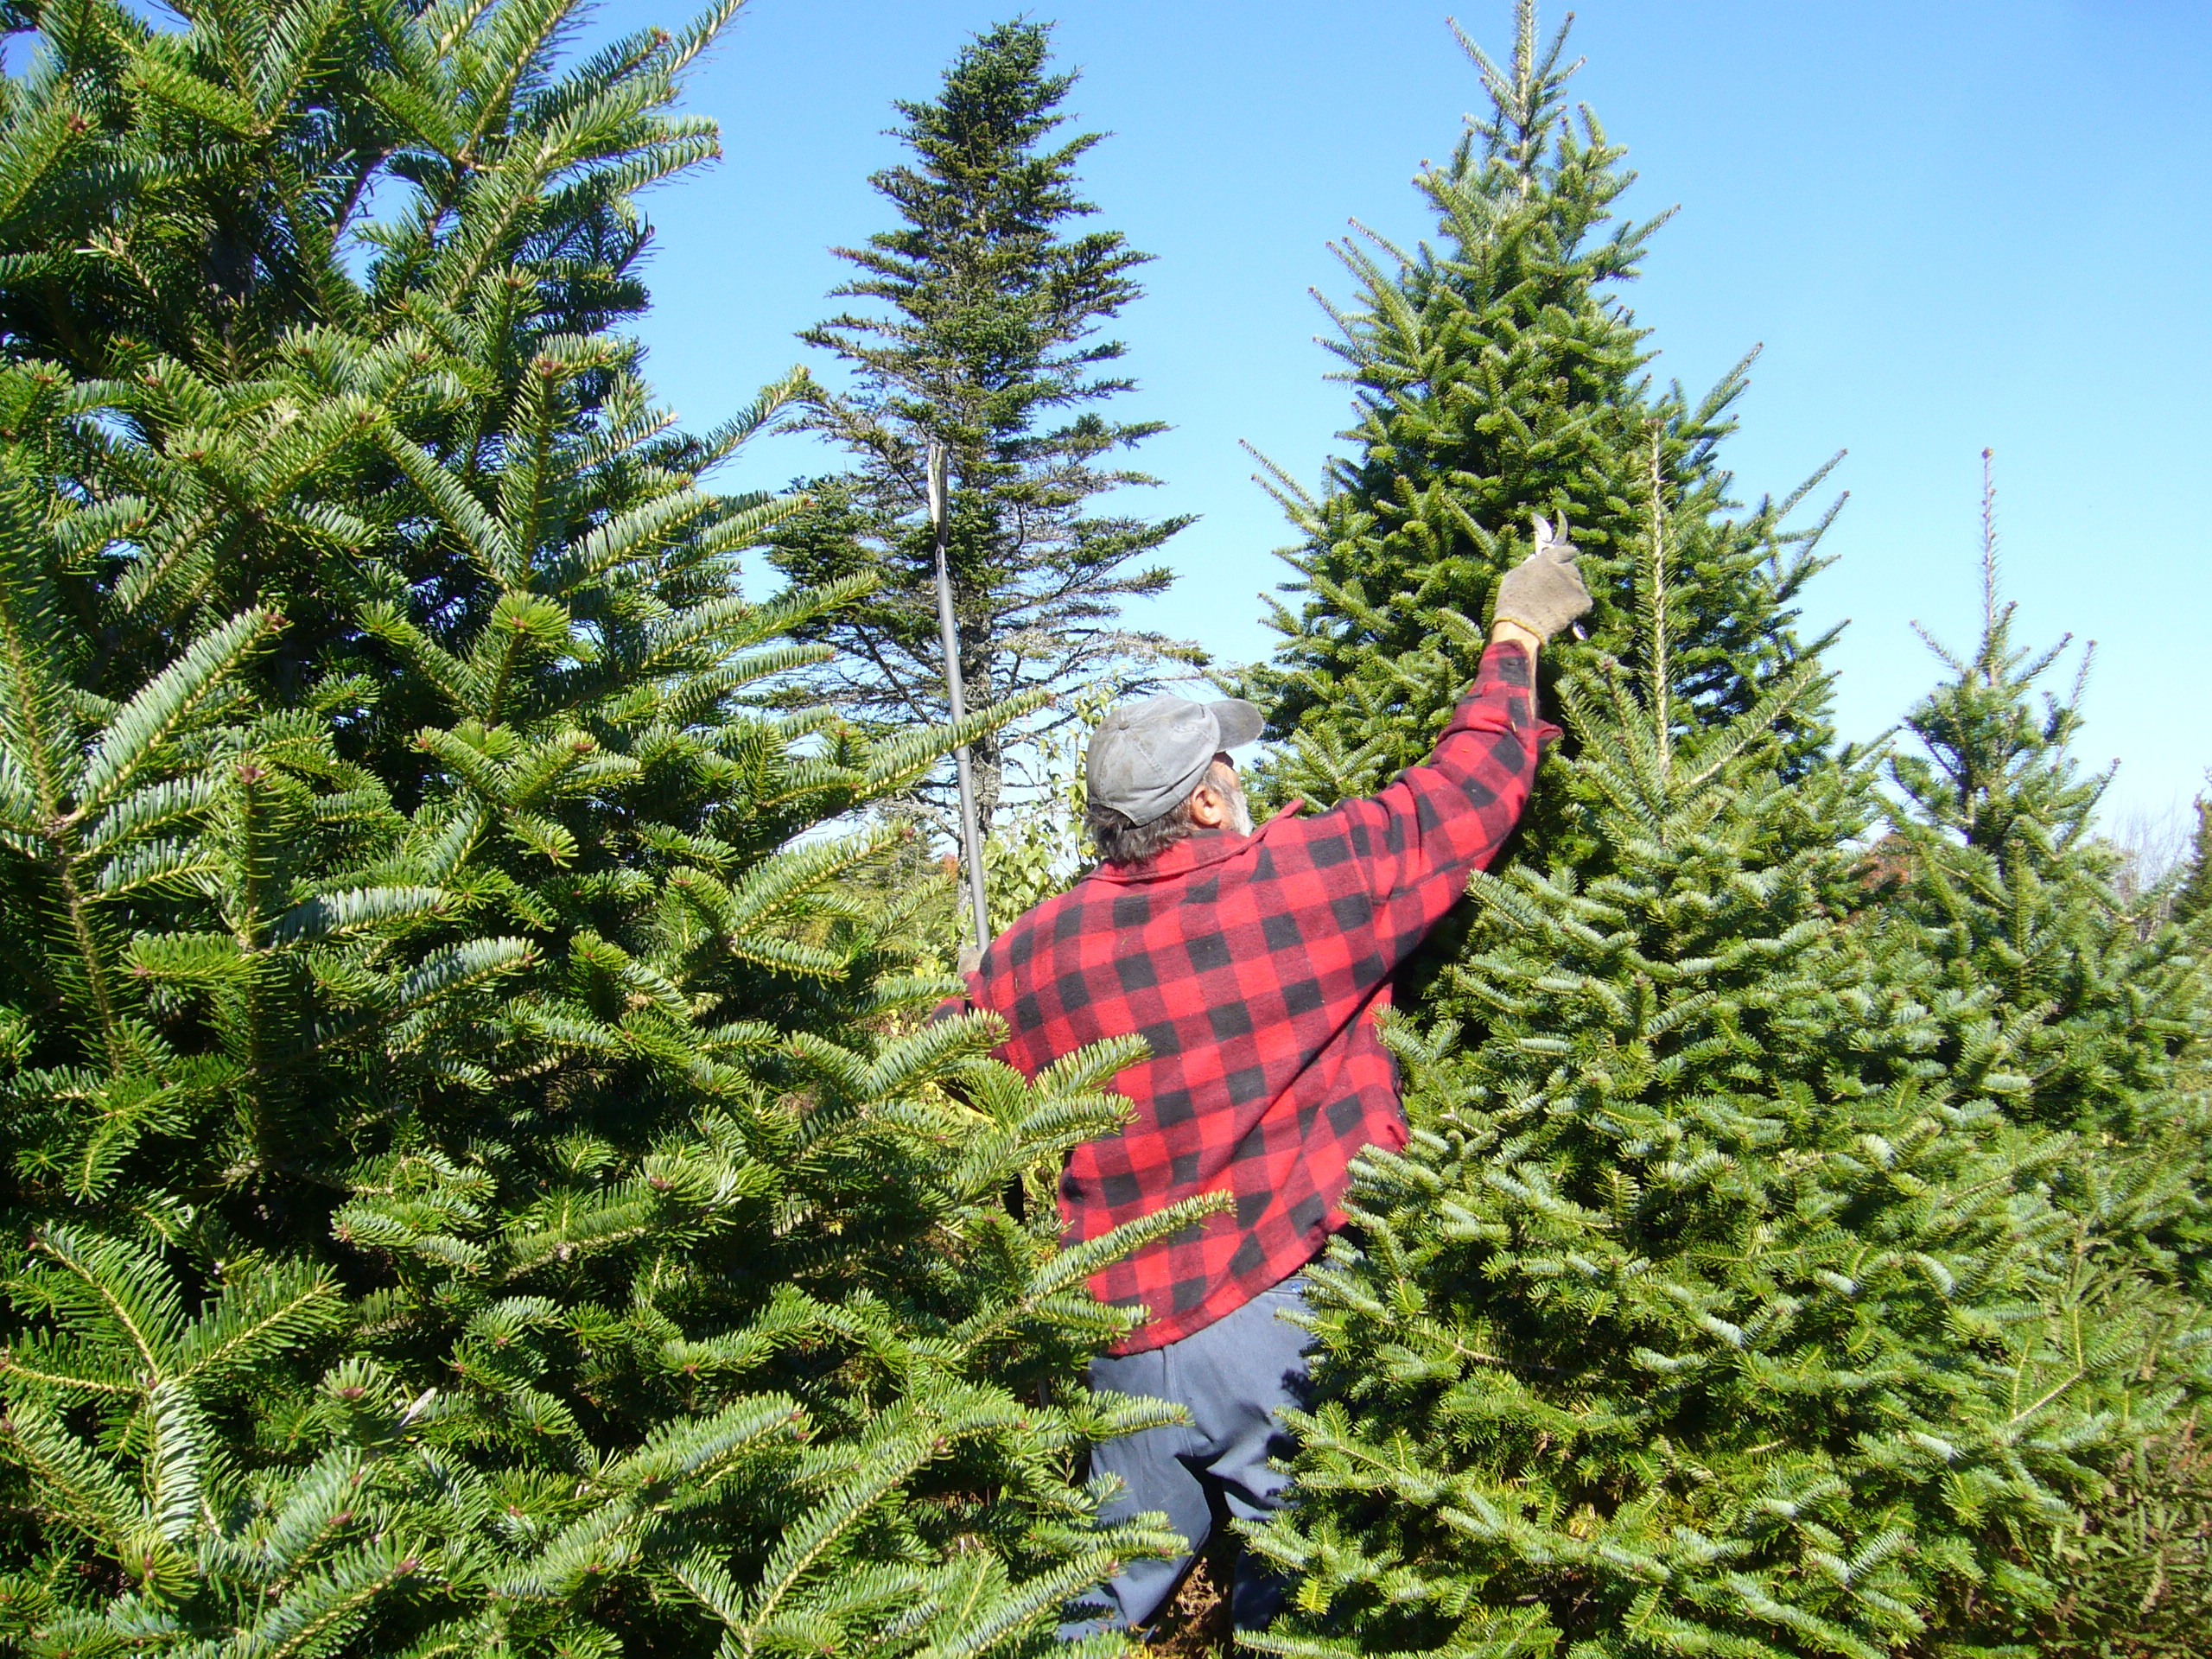 (c) Rcbutcher on wikipedia. Depicts Christmas tree farmer tending to trees in Waterloo, Nova Scotia.